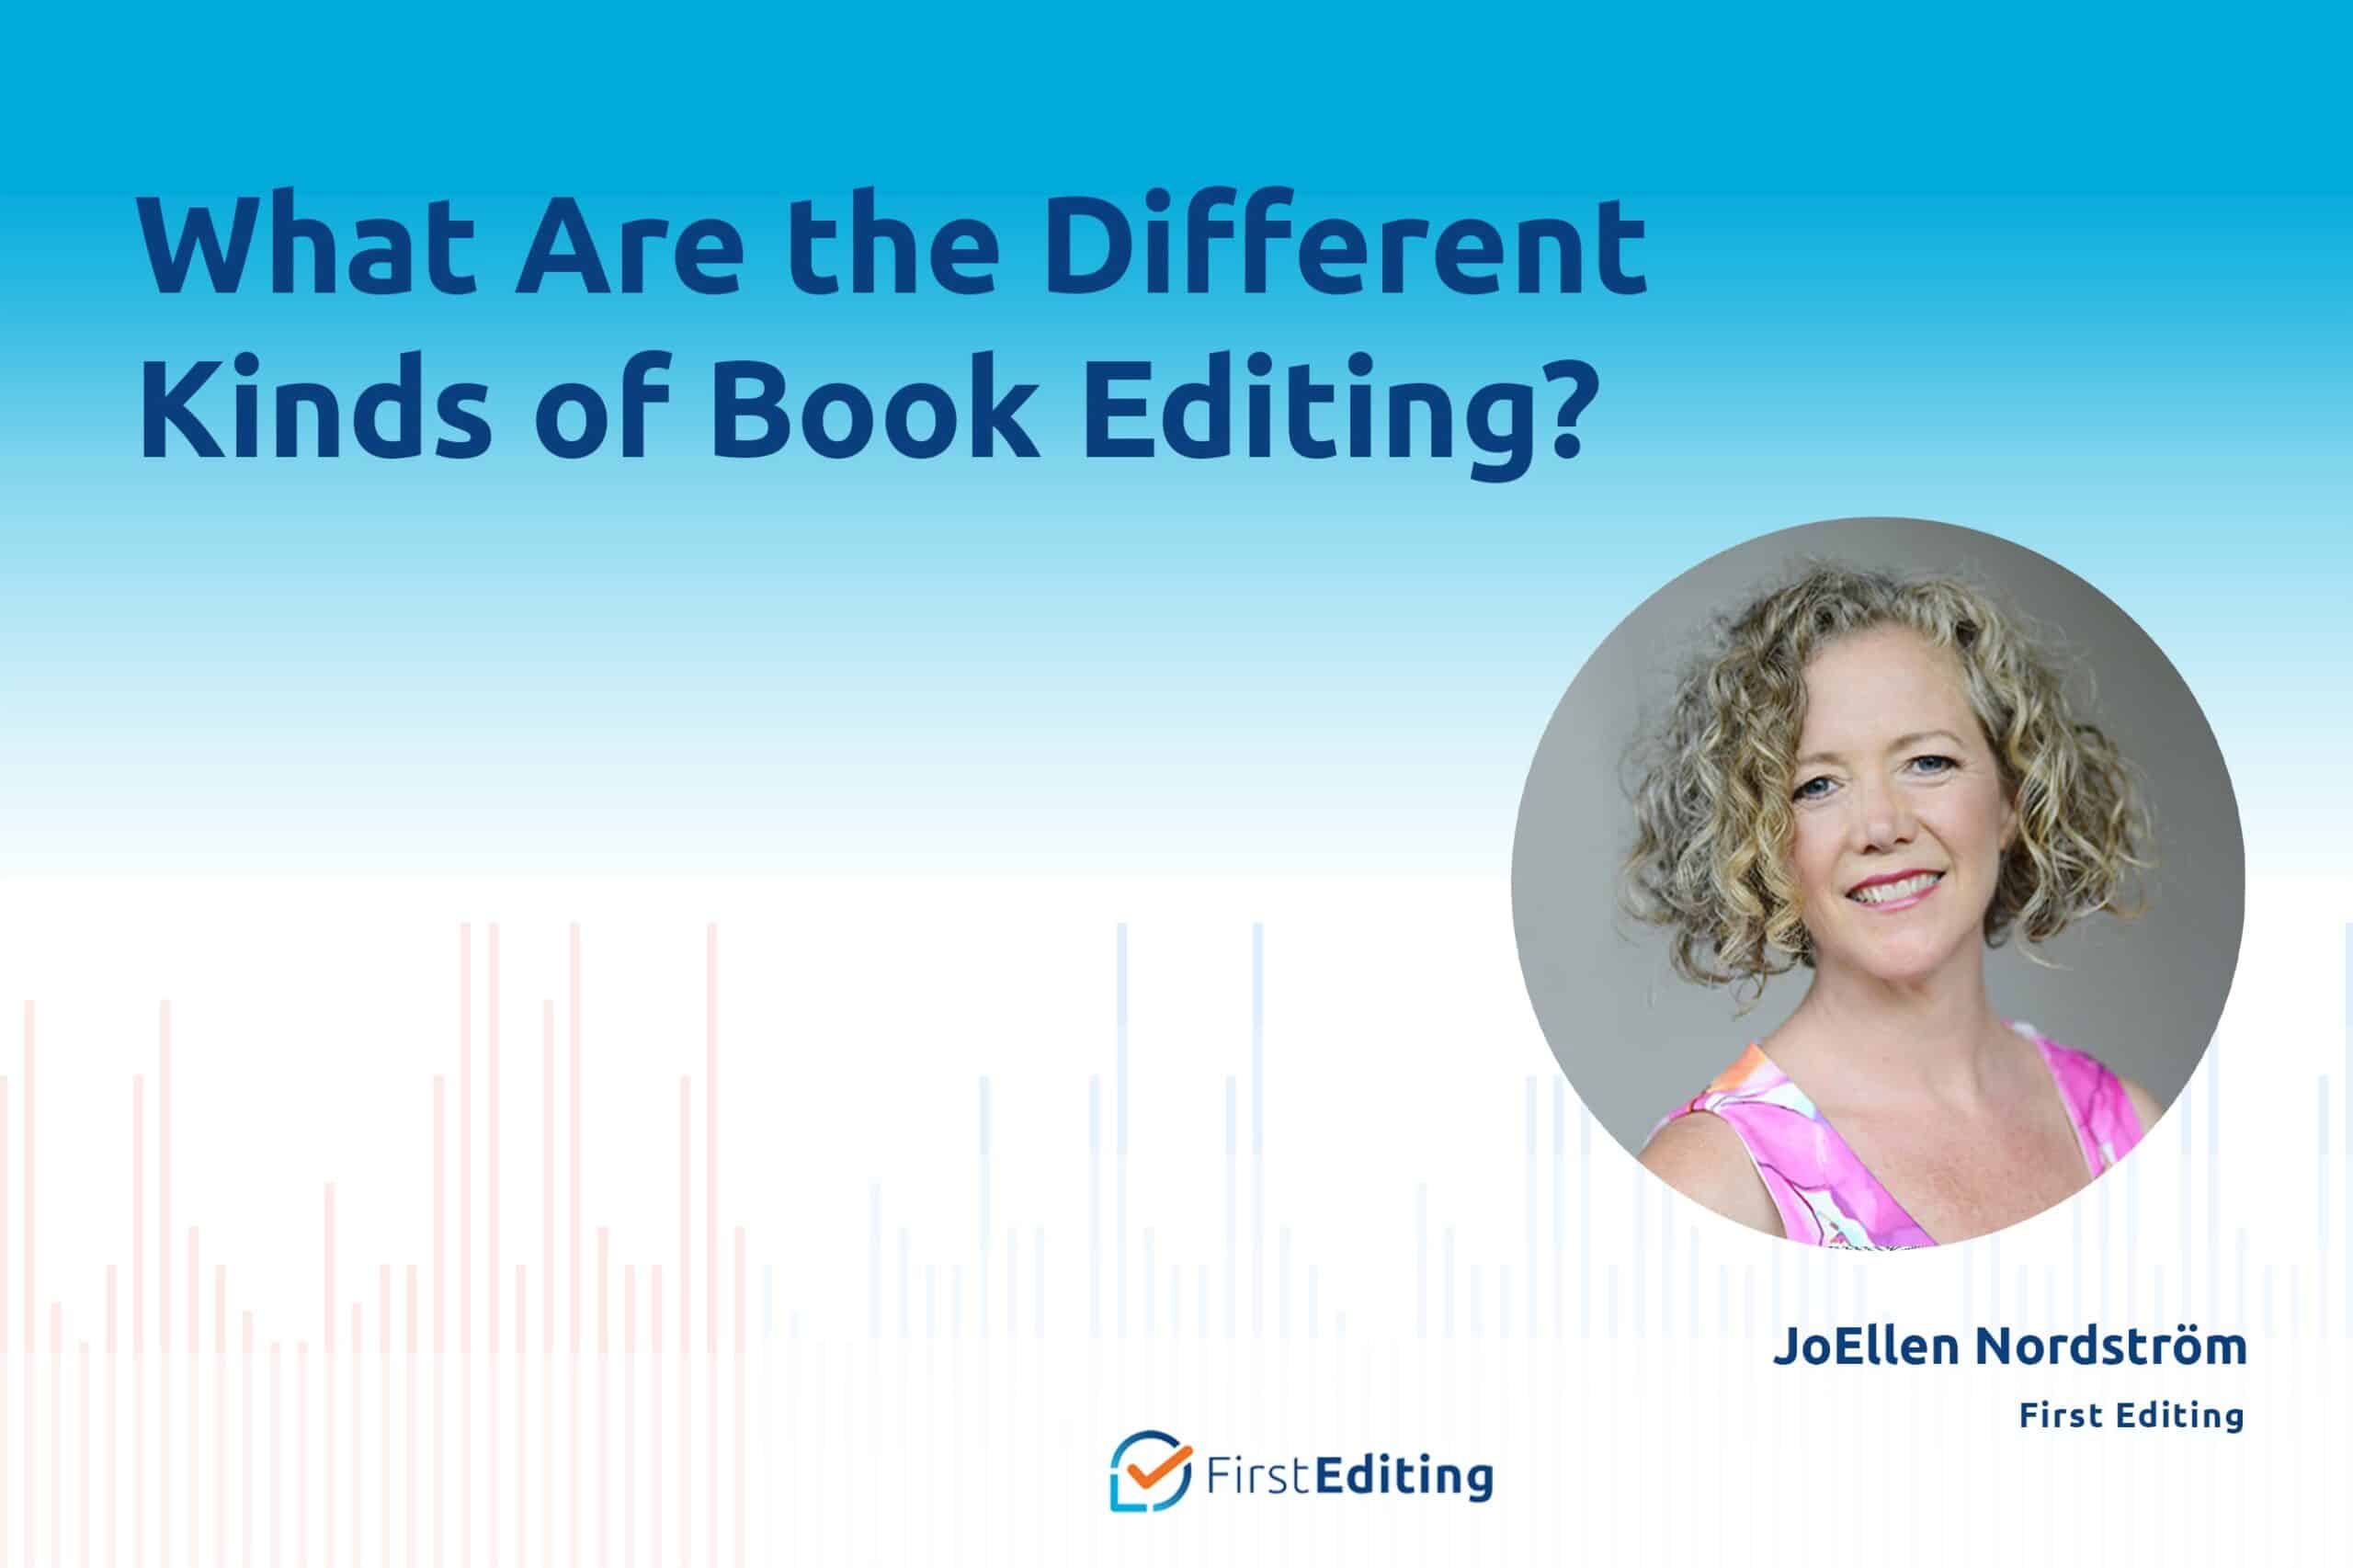 What Are the Different Kinds of Book Editing with JoEllen Nordström